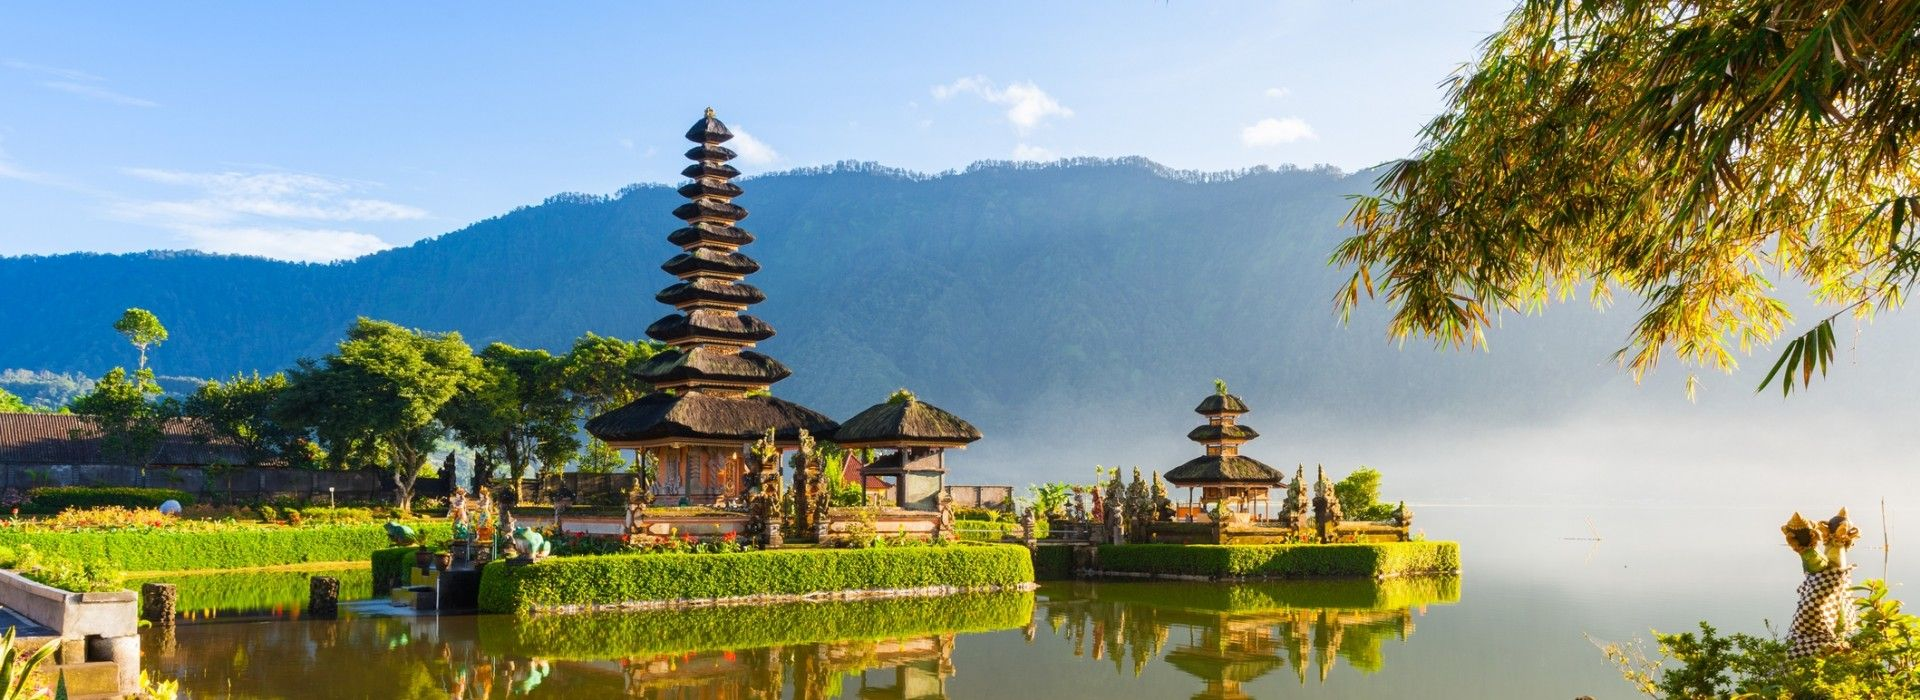 Road trips Tours in Ubud